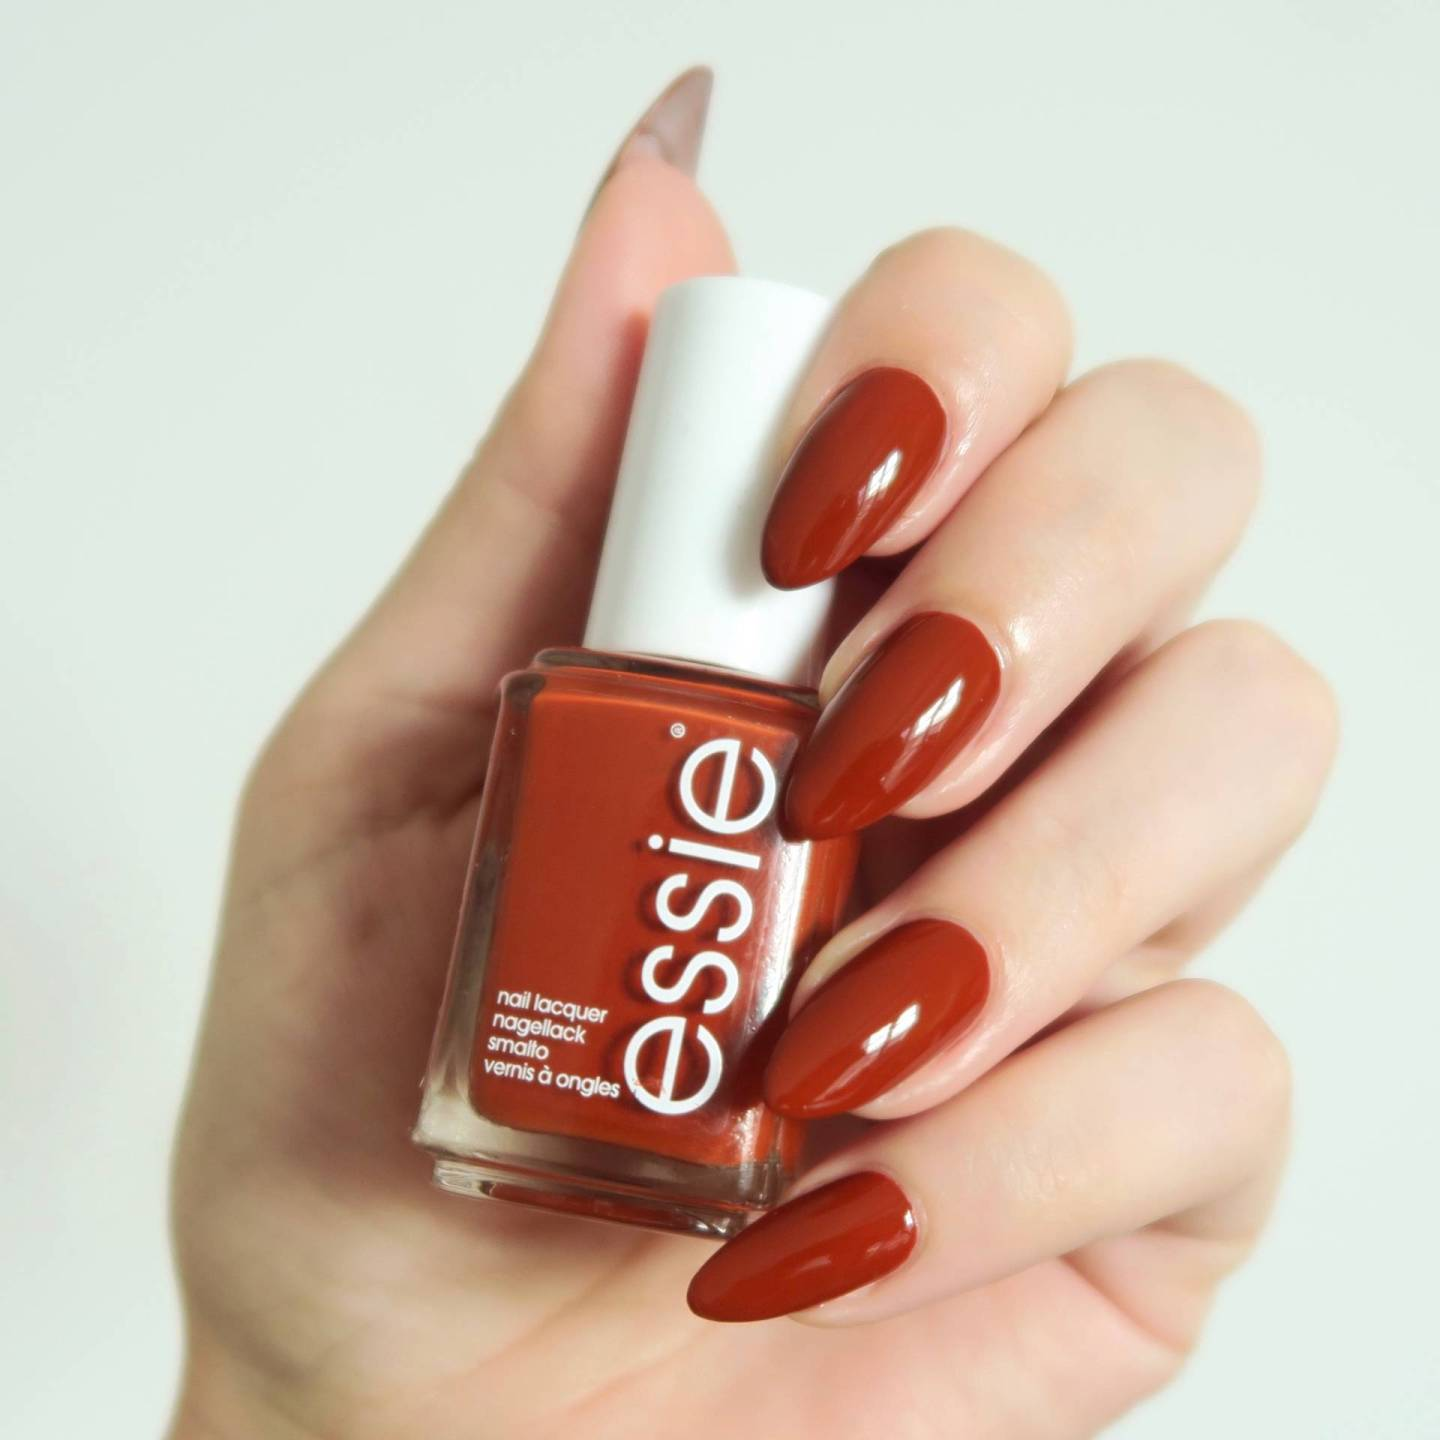 Essie Fall Collection 2016 Tokyo Review Playing Koi - Talonted Lex